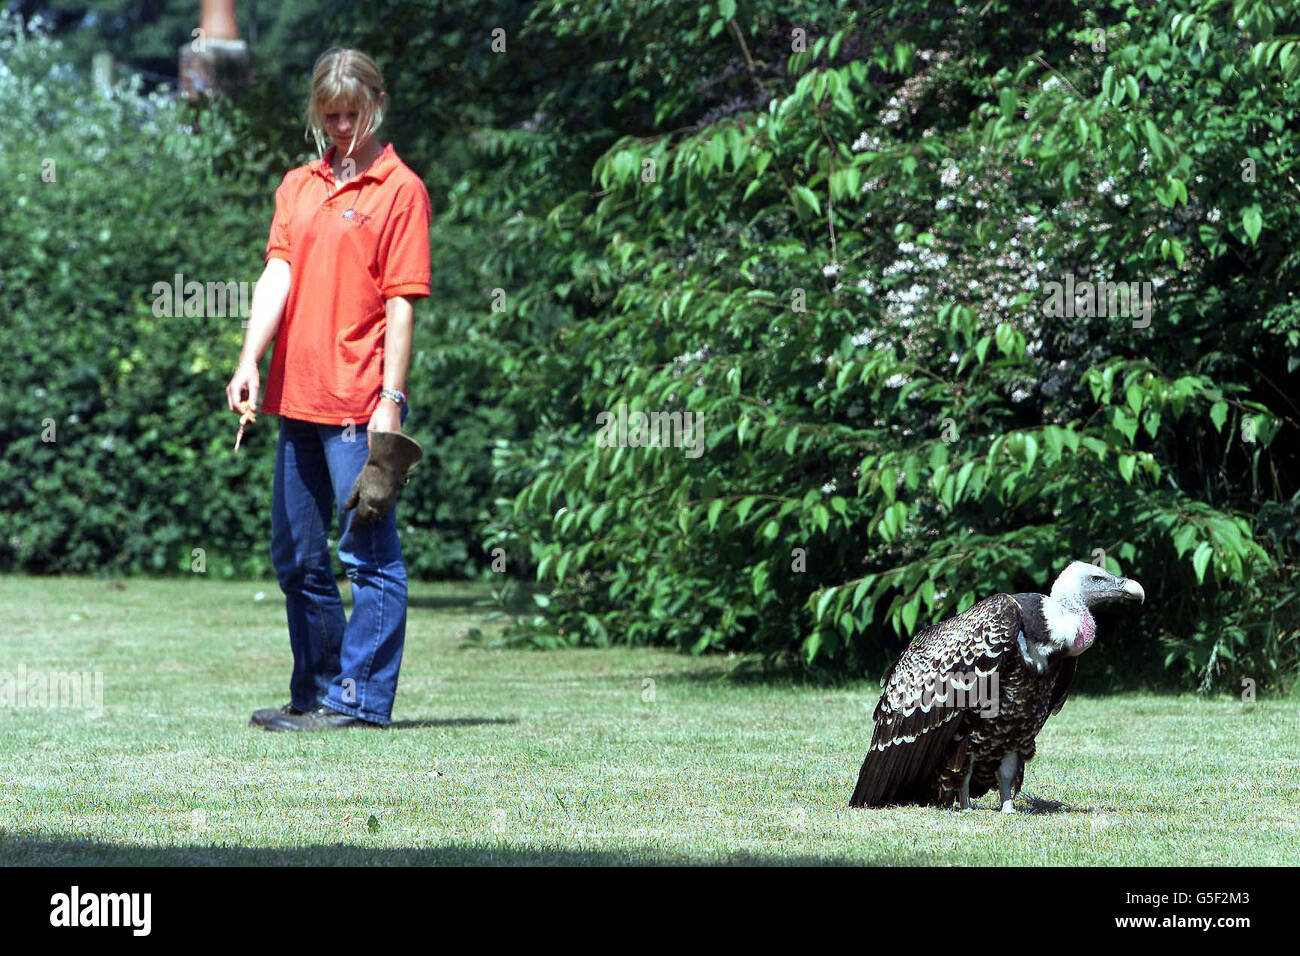 Vulture Escapes from Zoo - Stock Image